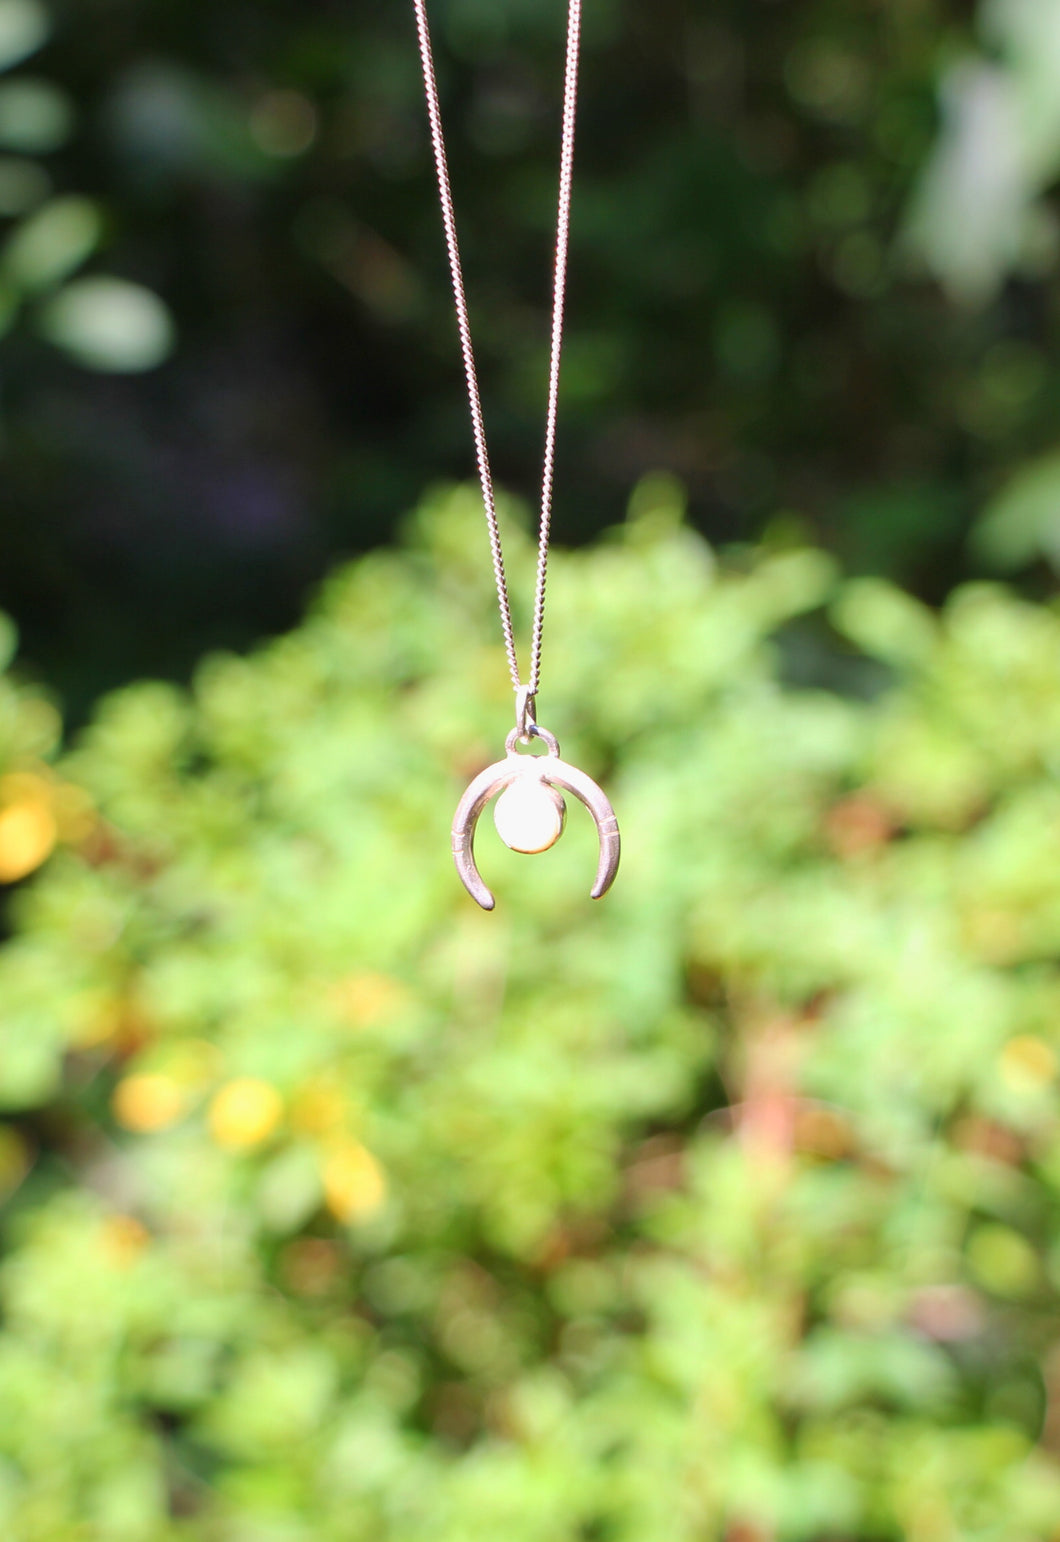 This photo shows a silver necklace with a pendant that is also silver in the shape of a moon, with a circular moonstone gemstone inside of the curve of the crescent moon.